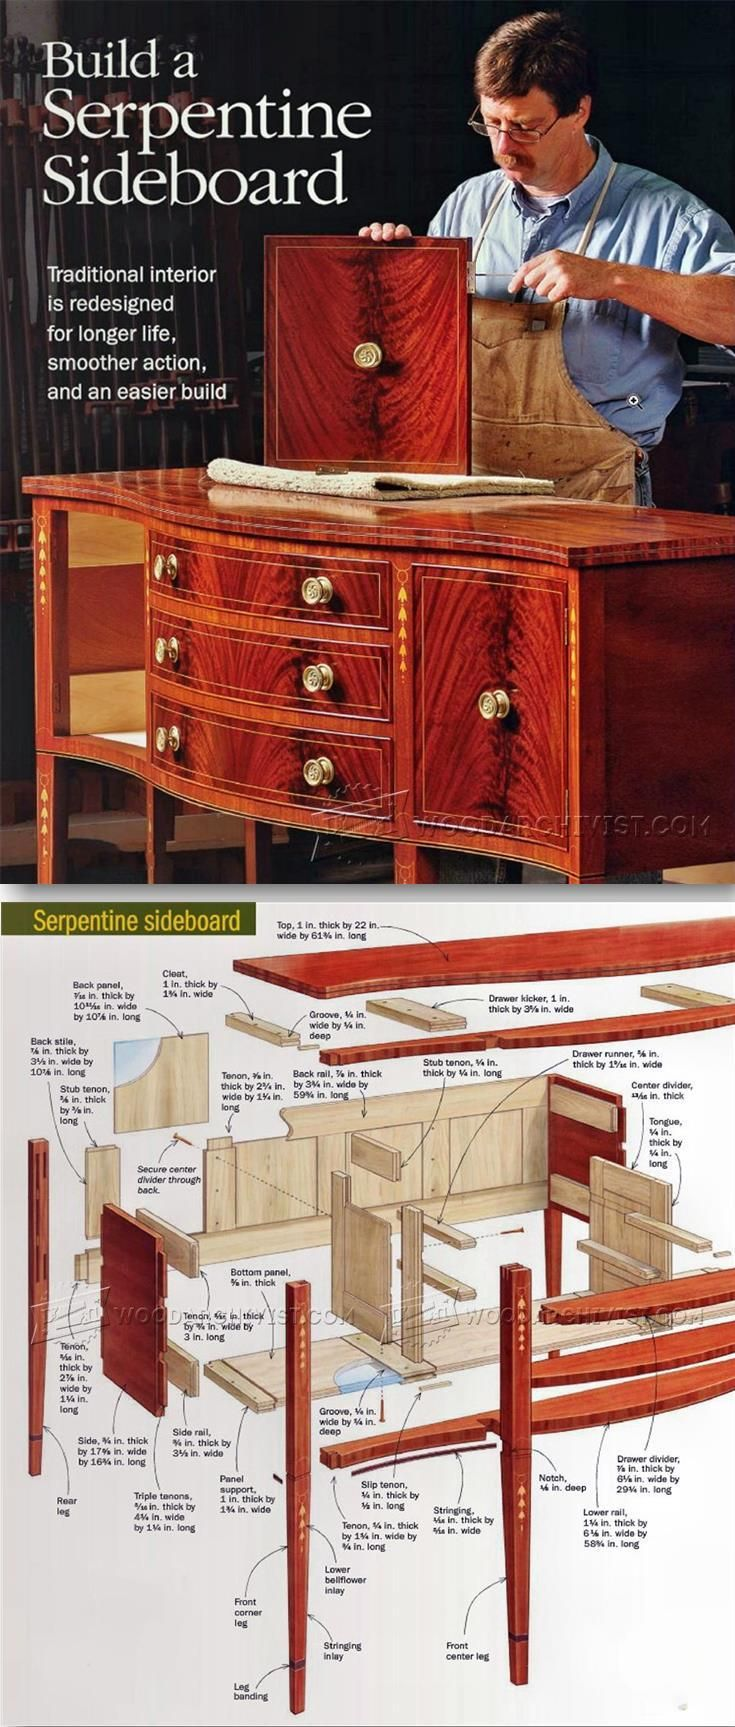 How to build a wingback chair my woodworking plans - Sideboard Plan Furniture Plans And Projects Woodarchivist Com Furniture Plansdiy